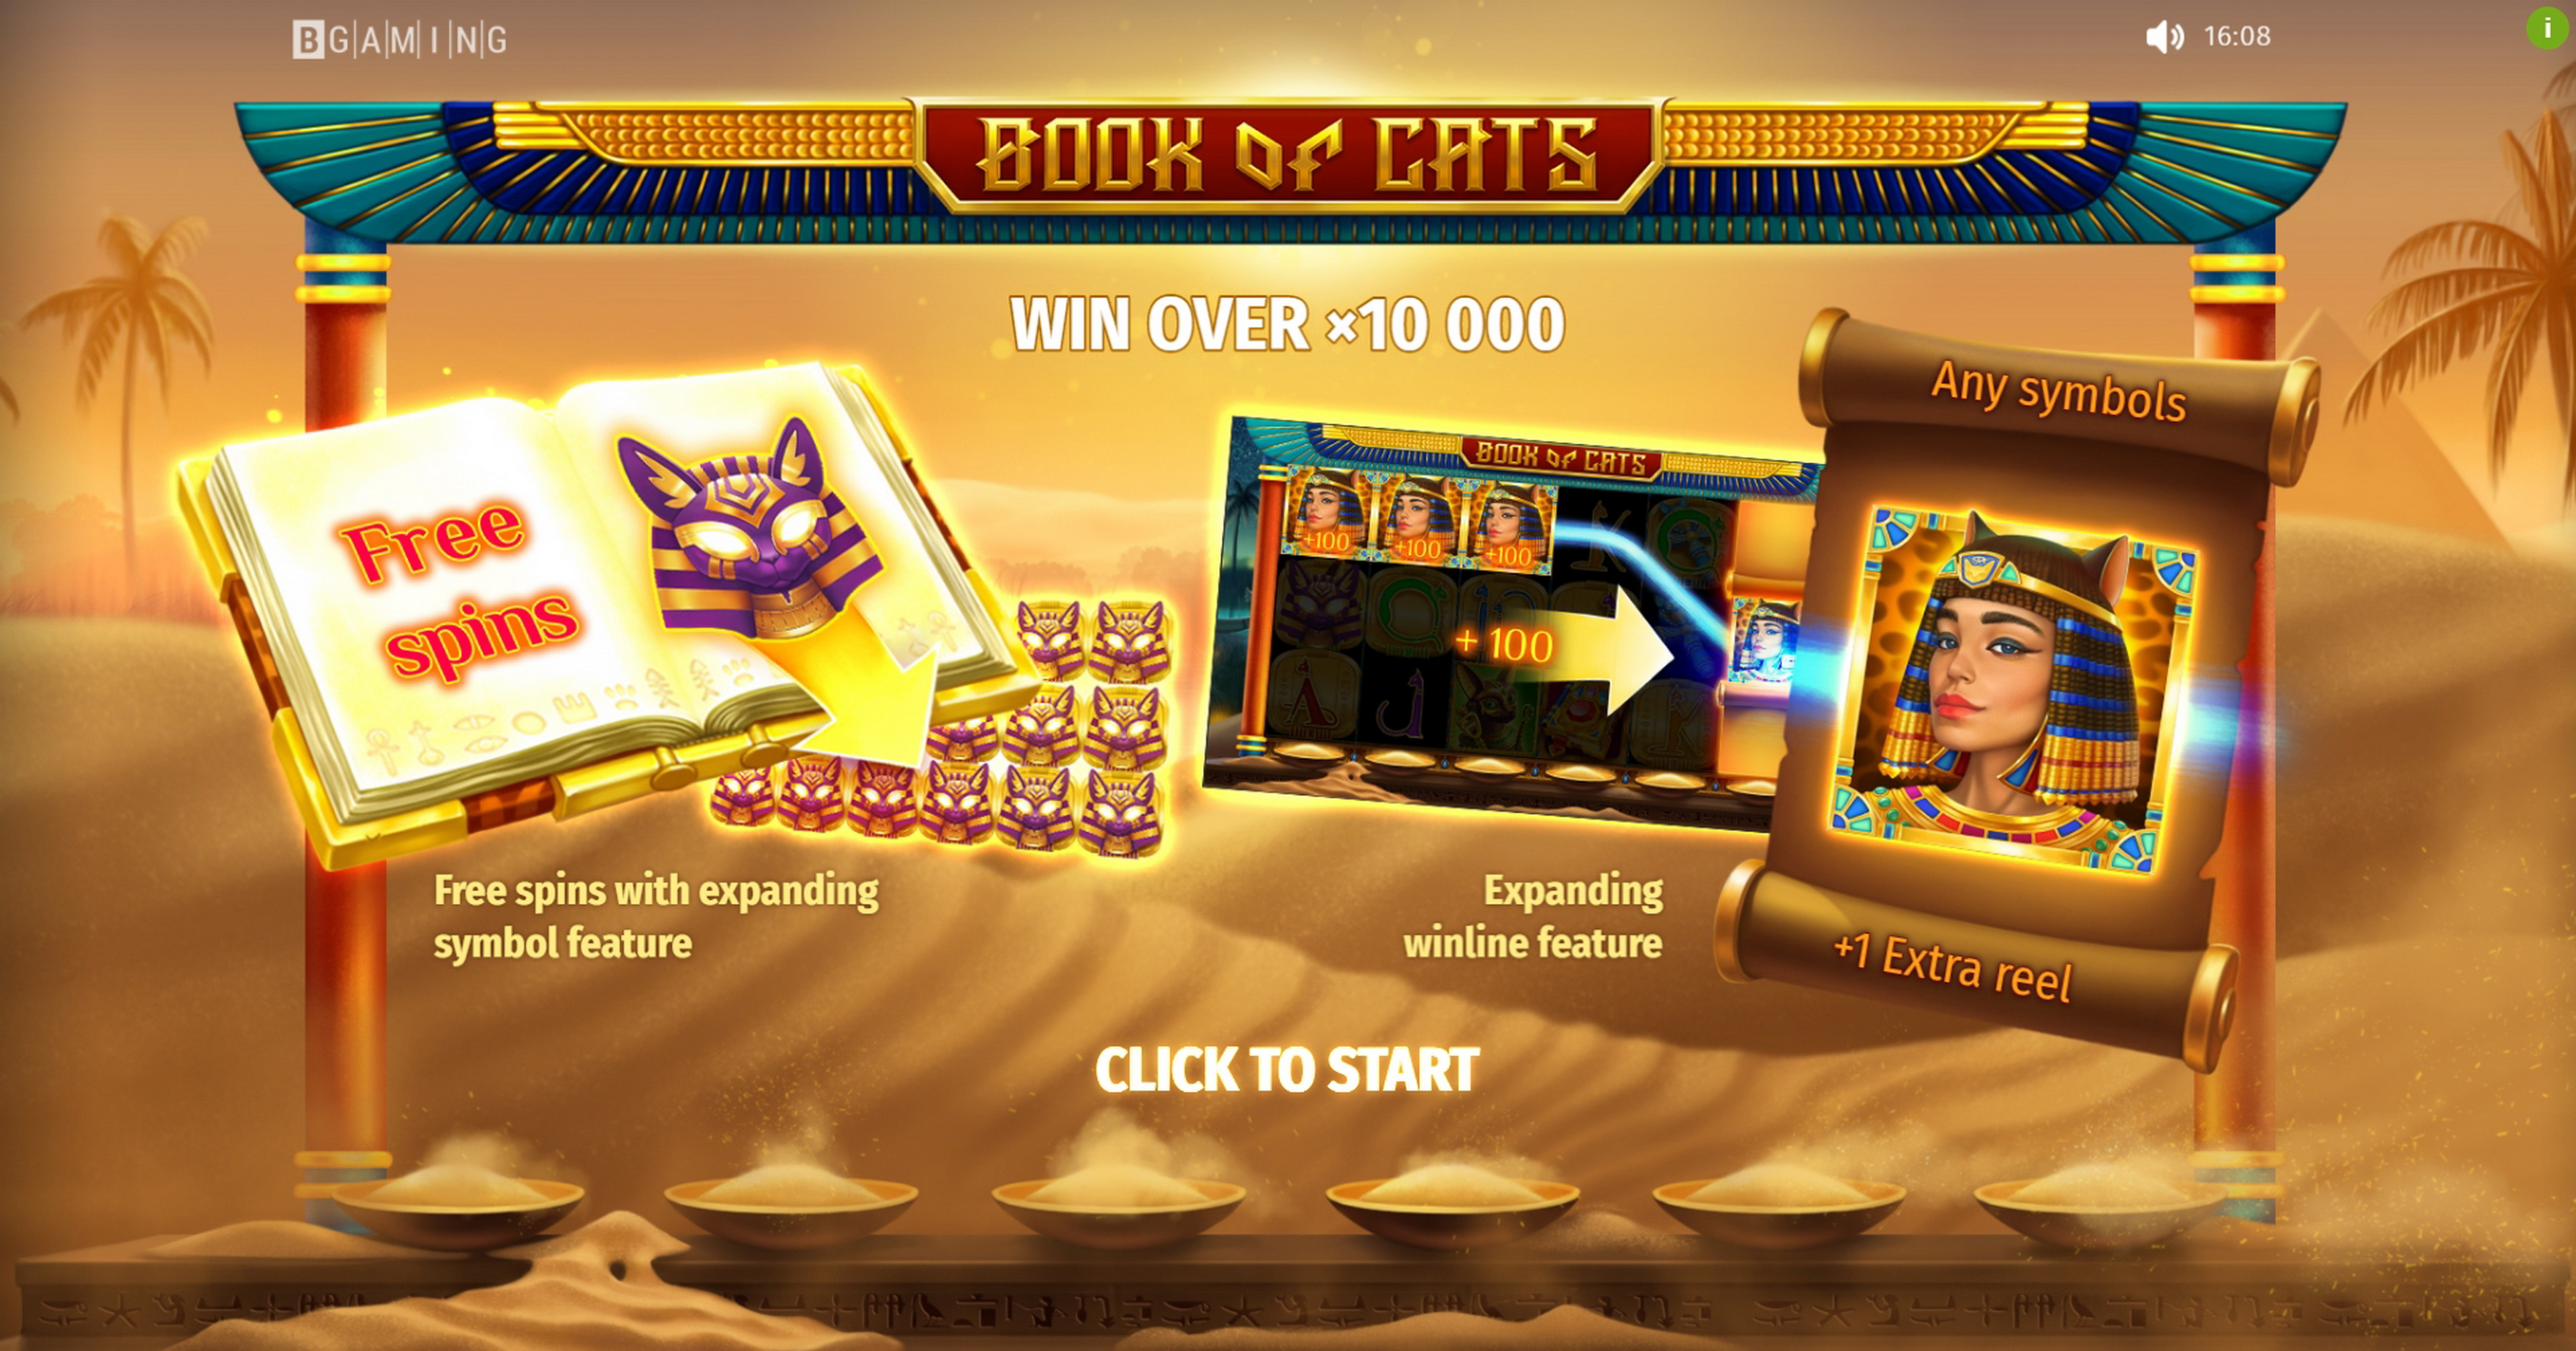 Play Book Of Cats Free Casino Slot Game by BGAMING